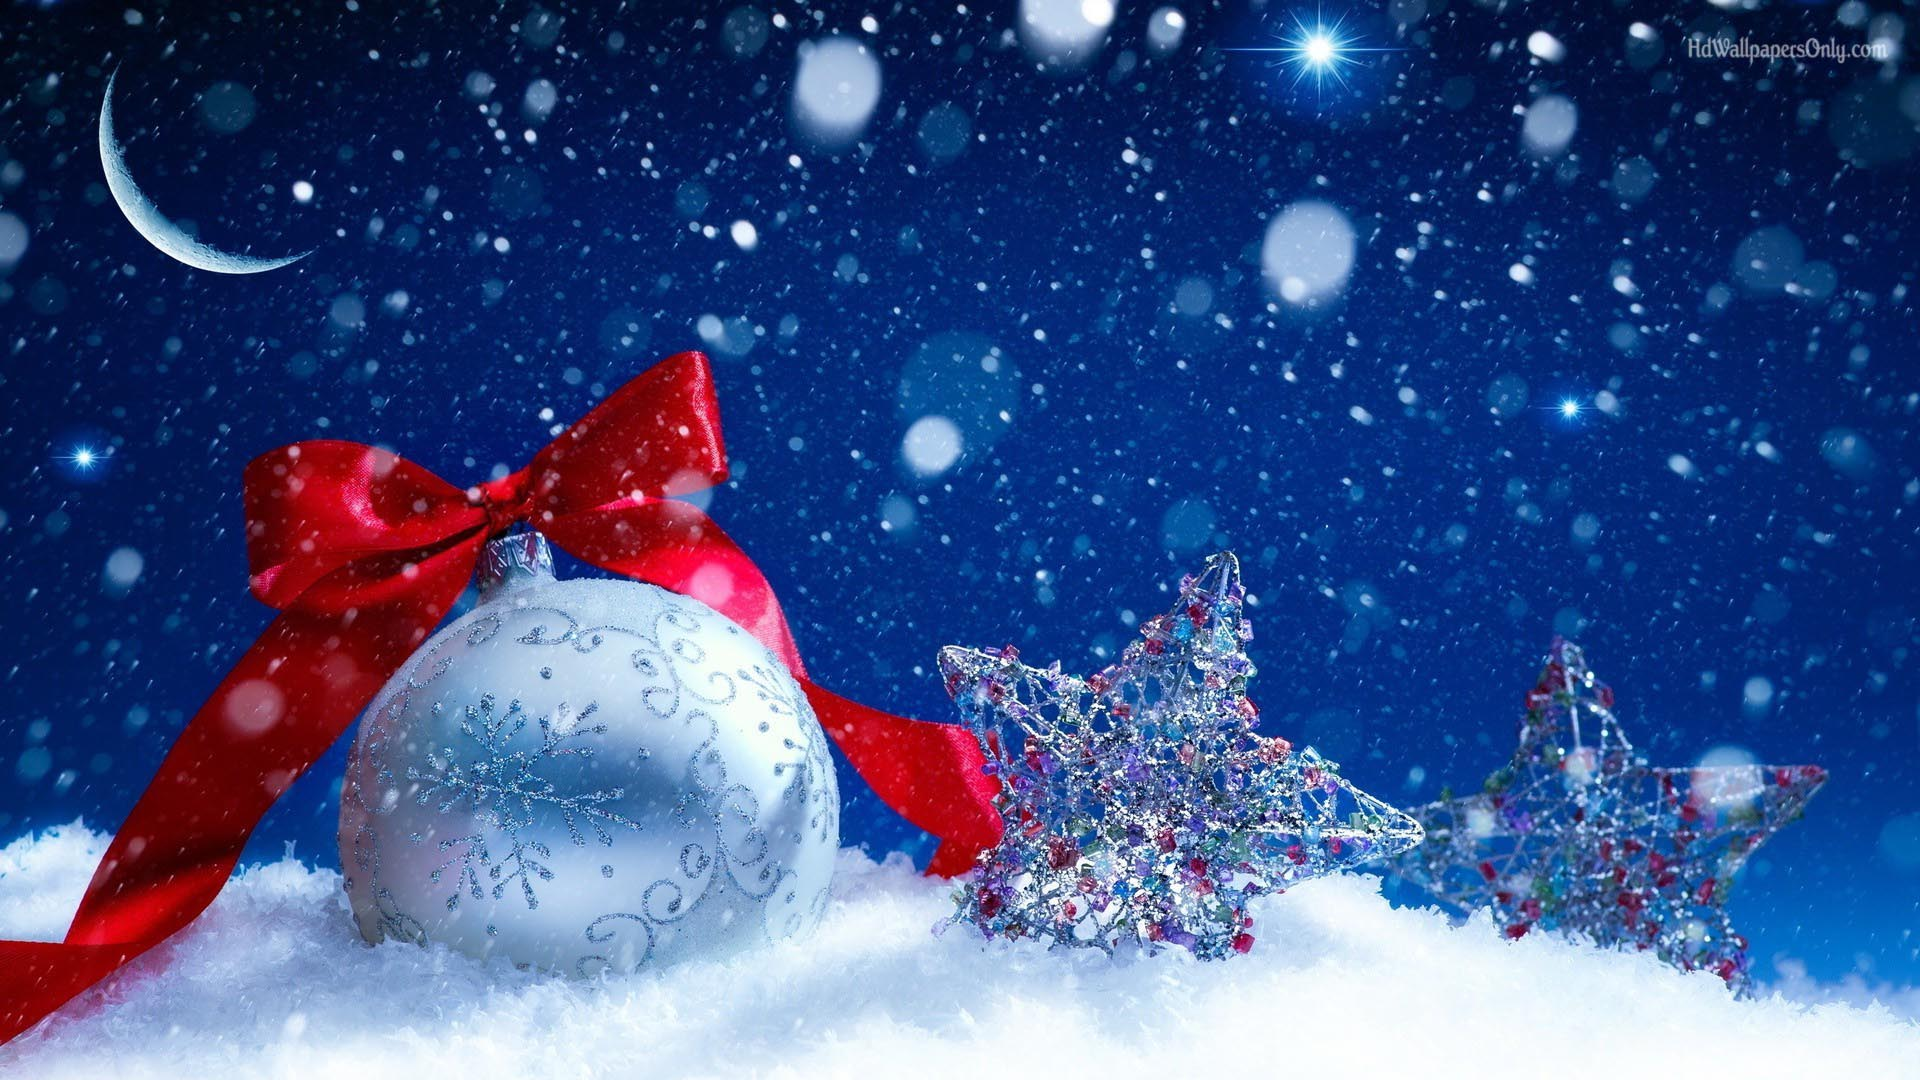 Christmas Wallpapers Hd 1080p: HD Winter Wallpapers 1080p